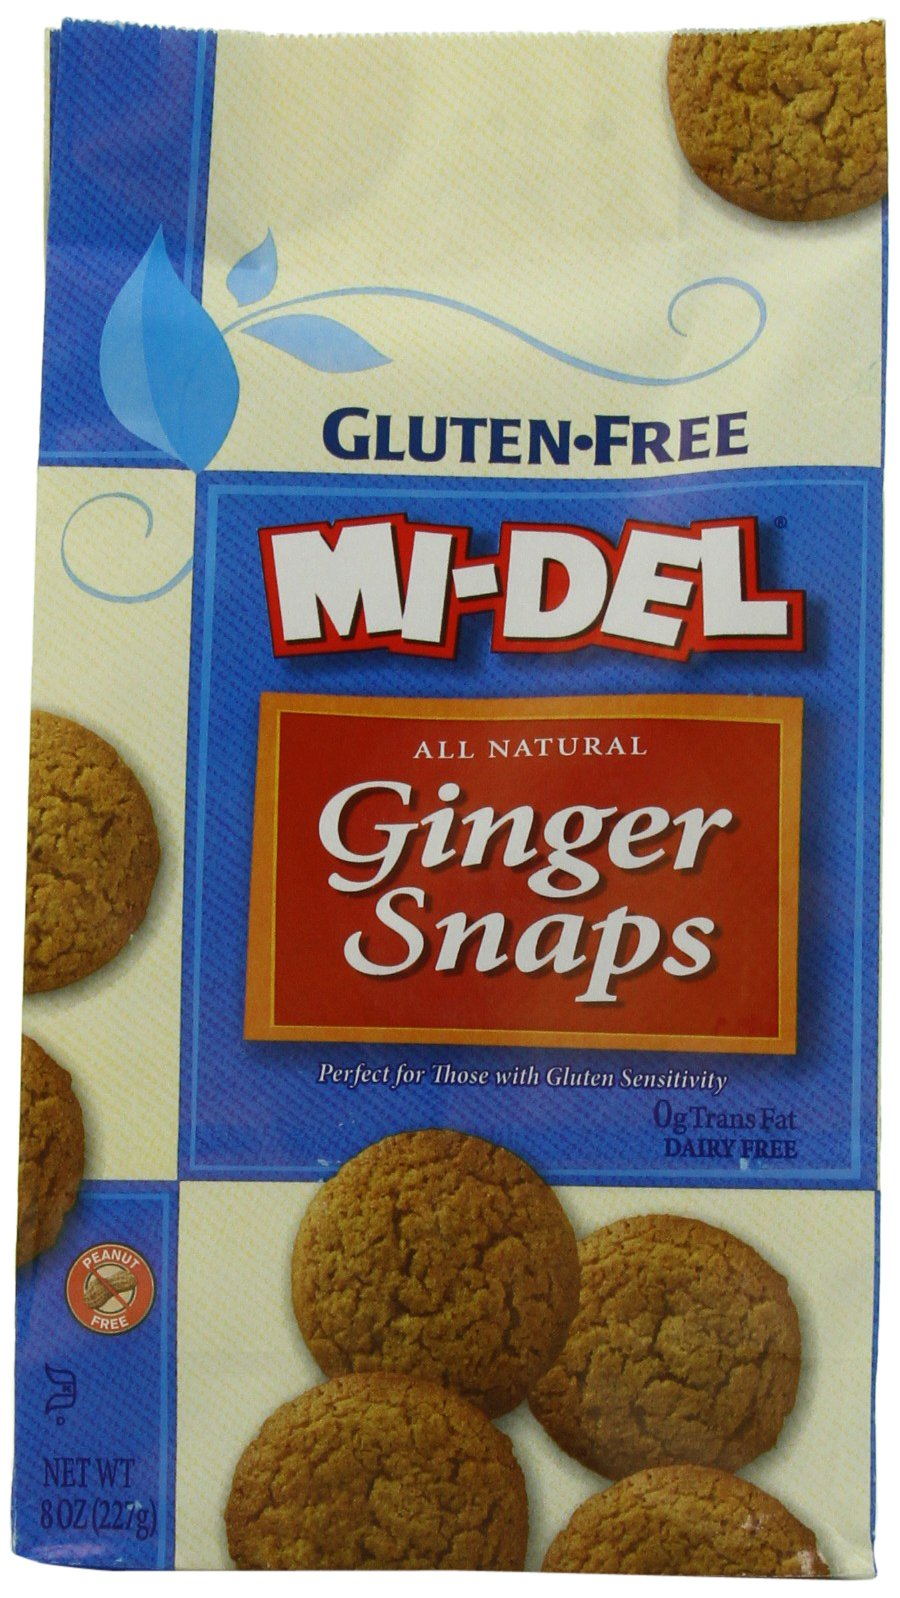 Mi-Del Gluten Free Cookies, Natural Ginger Snaps, 8 Ounce (Pack of 12) by Mi-Del